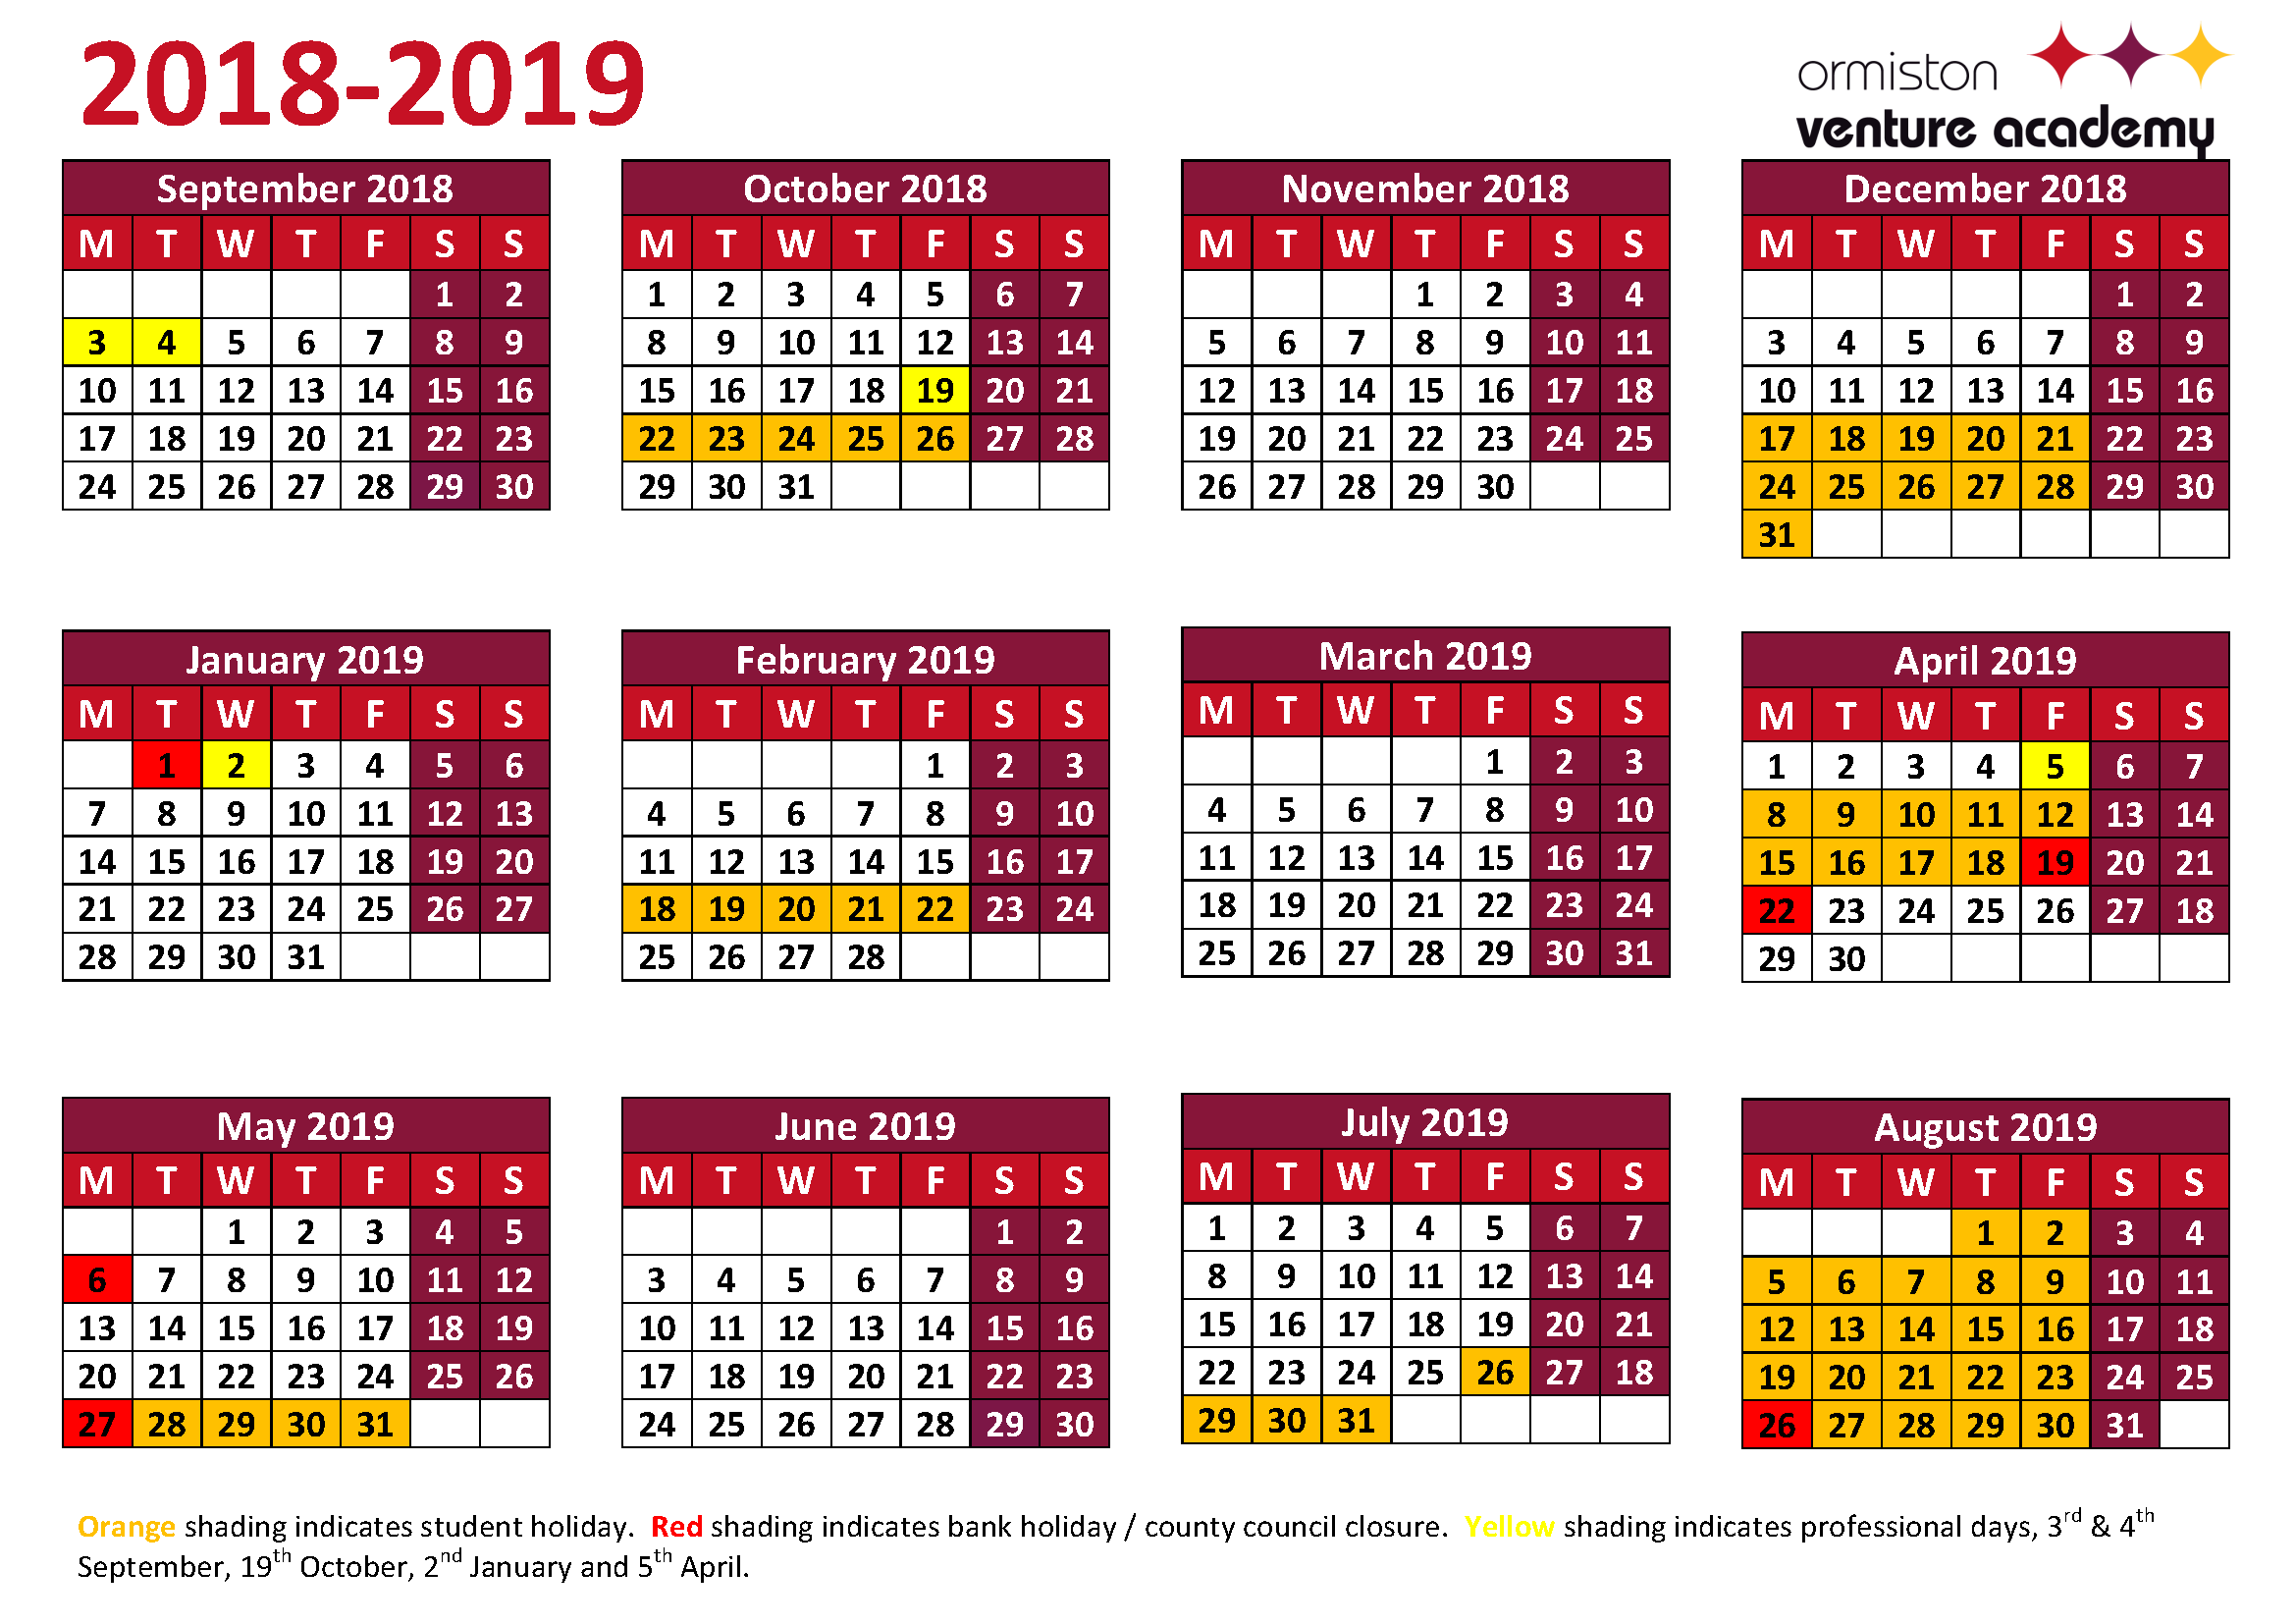 2019 School Year Calendar With Term Dates Ormiston Venture Academy